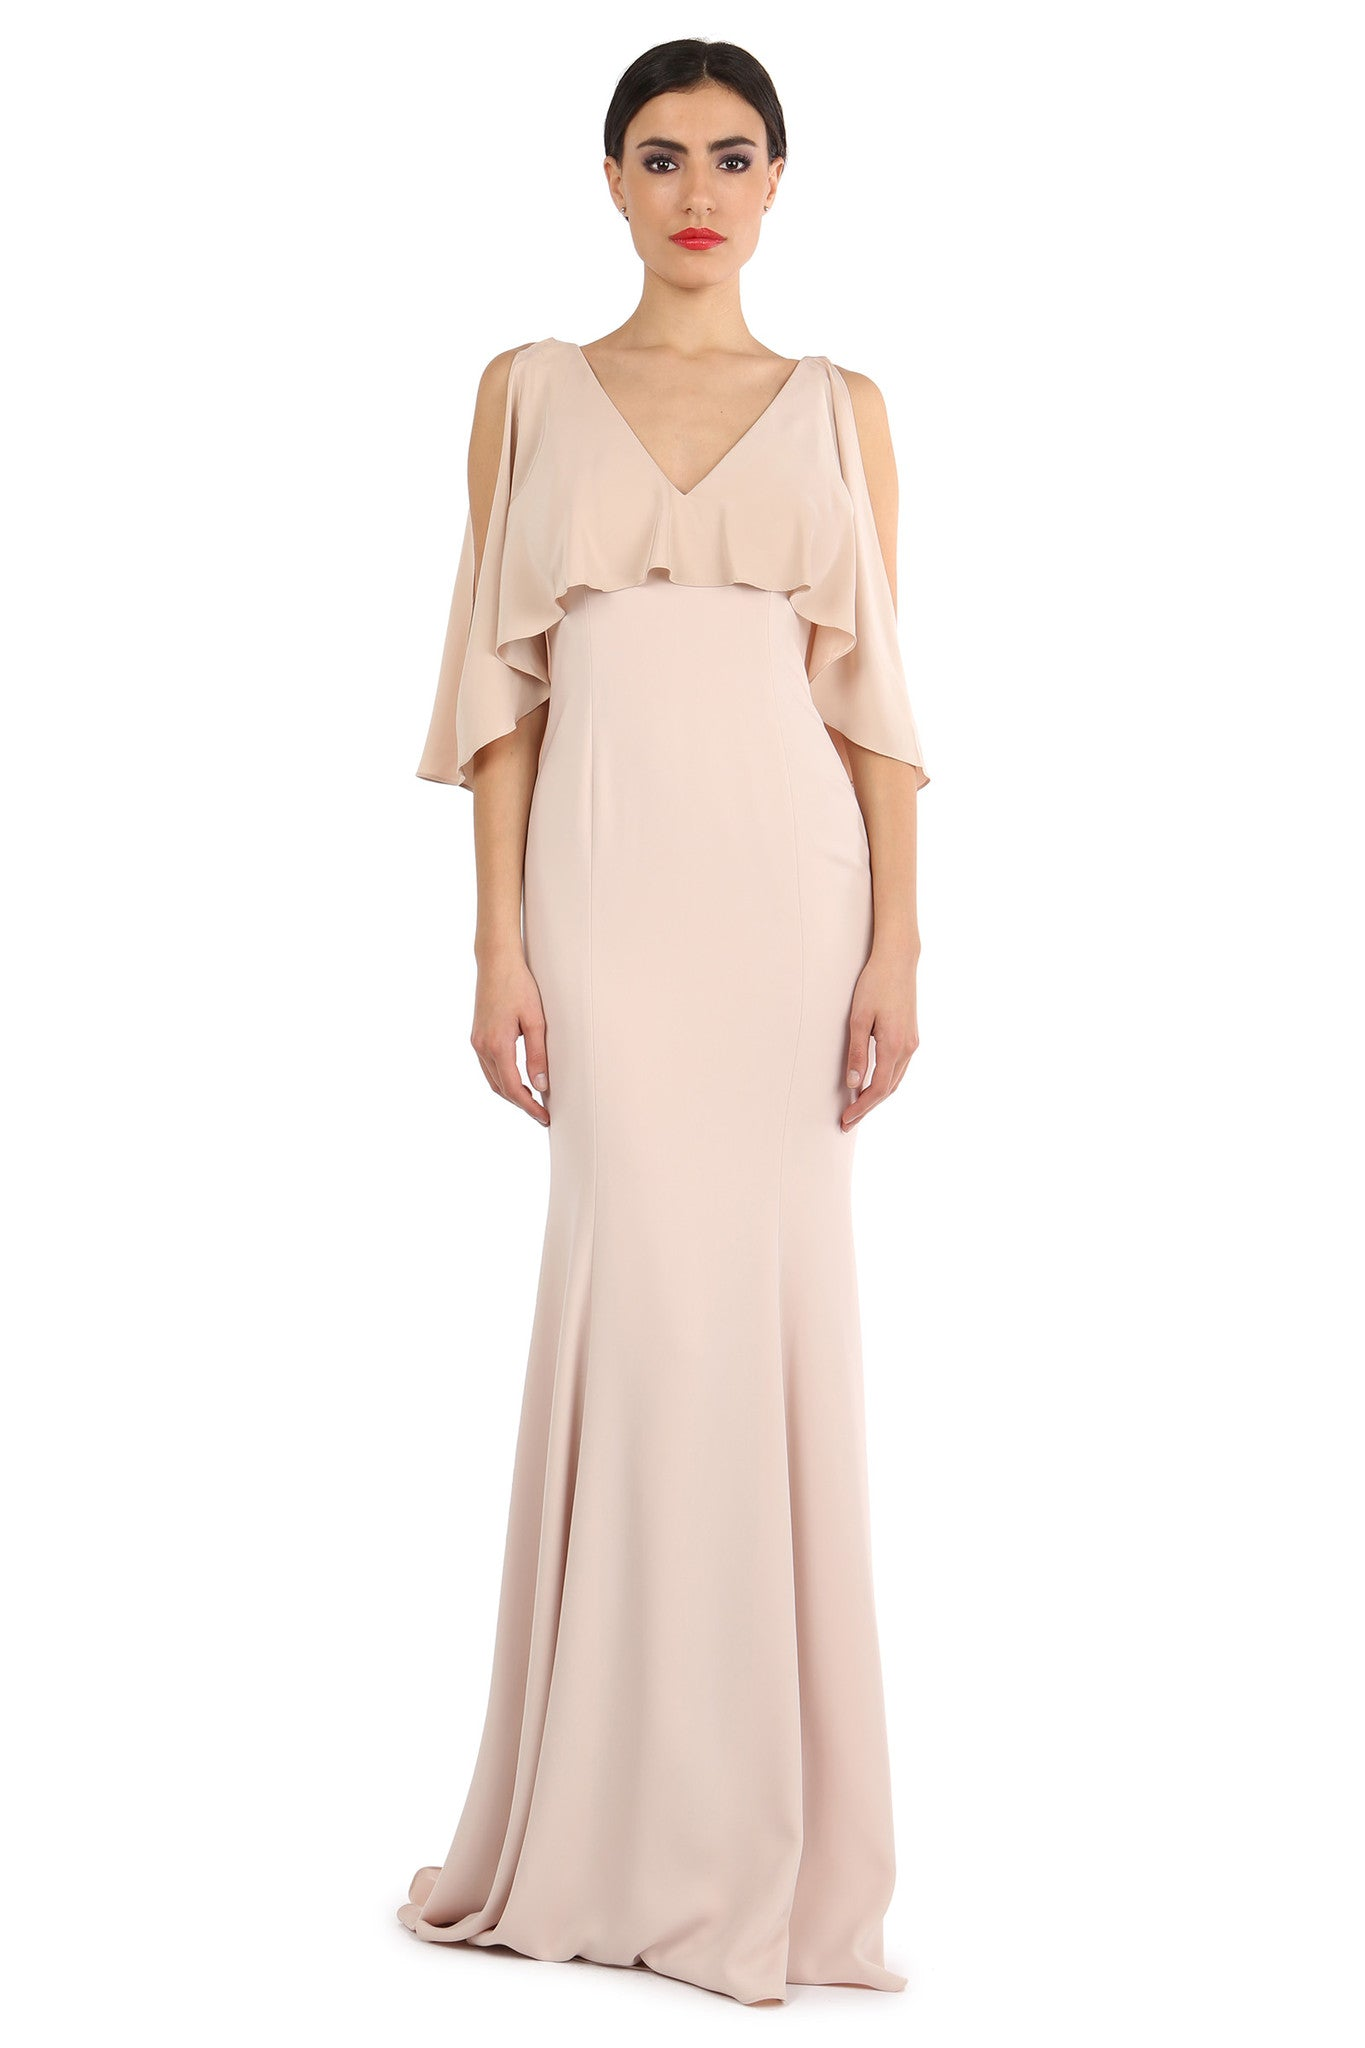 Jay Godfrey Sand Silk Overlay Gown - Front View